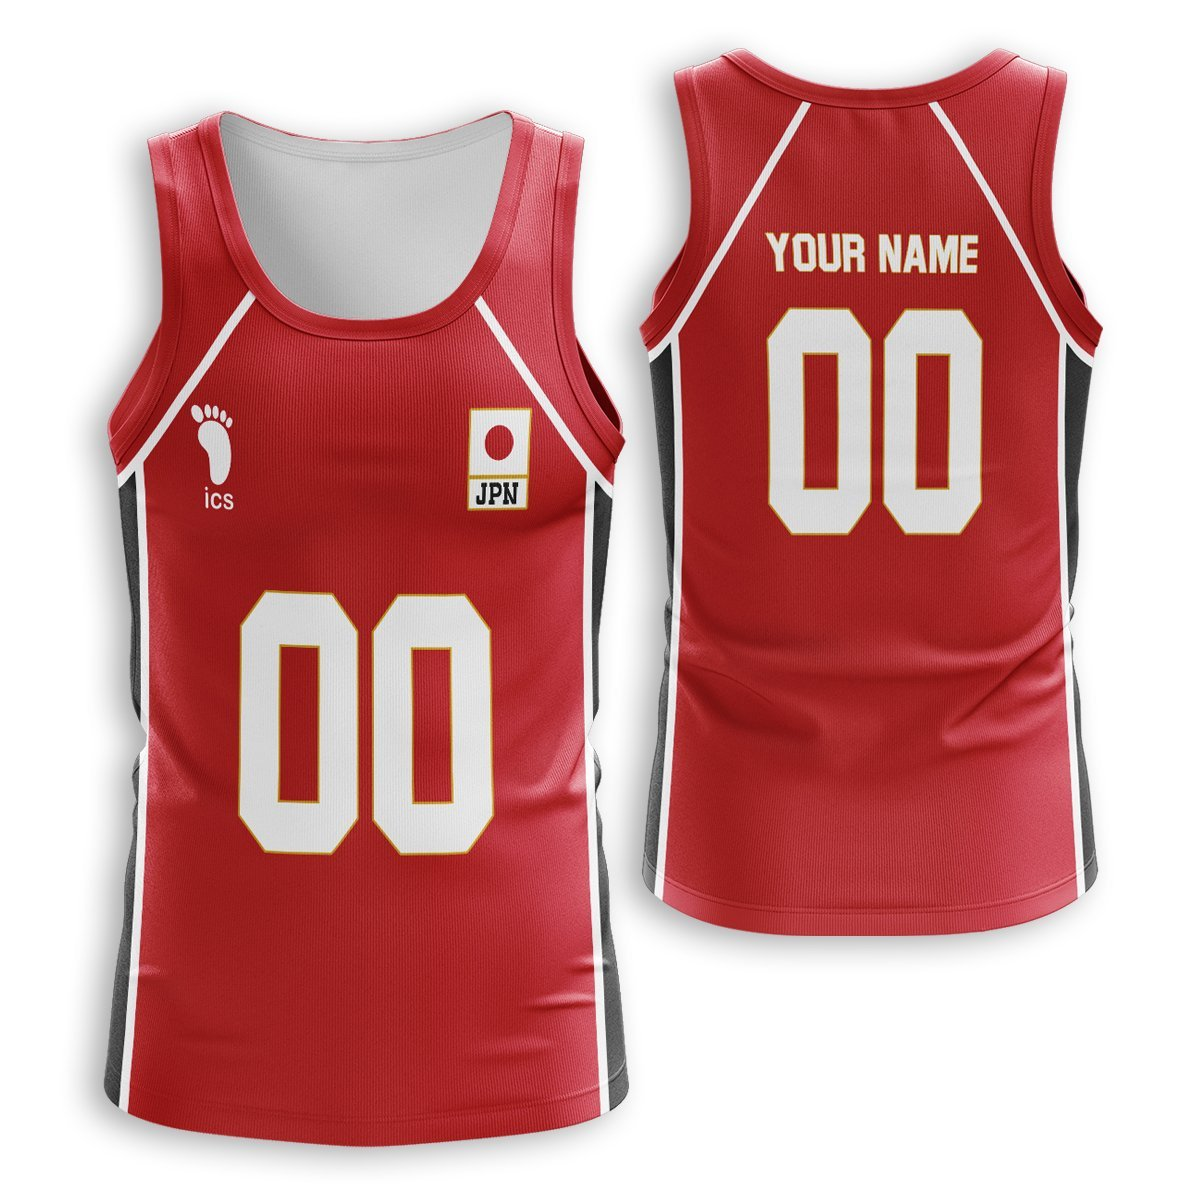 Personalized Haikyuu National Team Unisex Tank Tops FDM3107 S Official Anime Swimsuit Merch